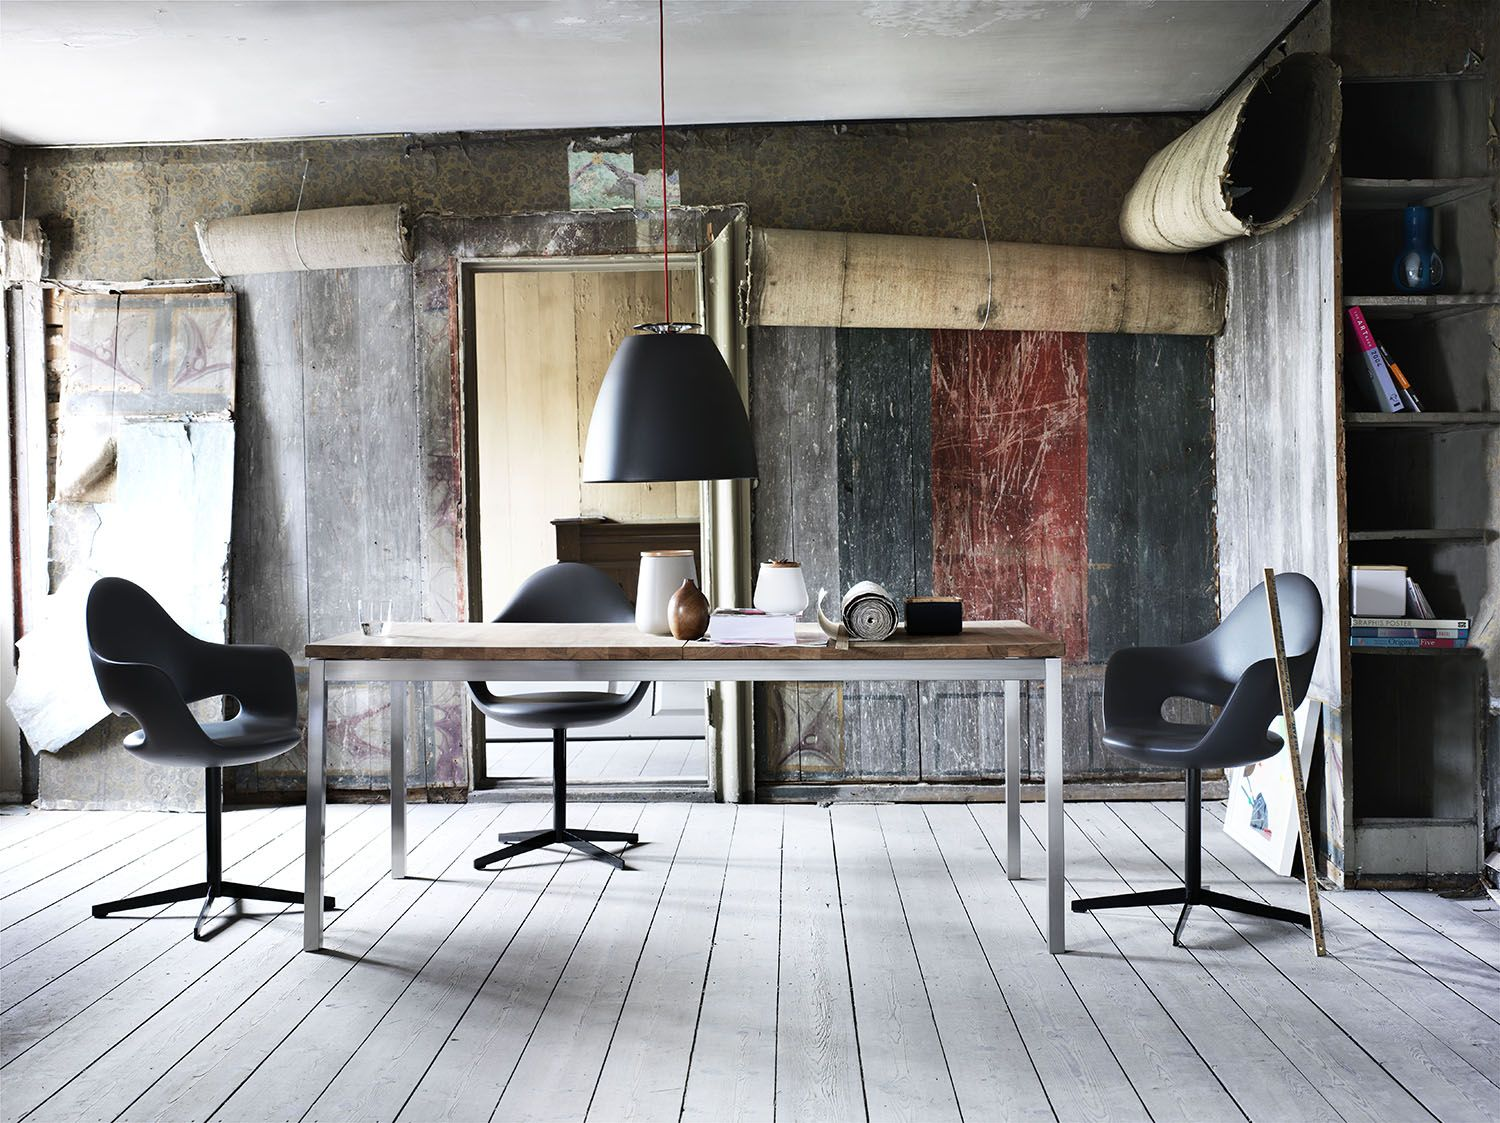 New Scandinavian Design Straight From B O L I A Your No 1 Source Of Architecture And Interior Design News Interior Design Interior Scandinavian Design